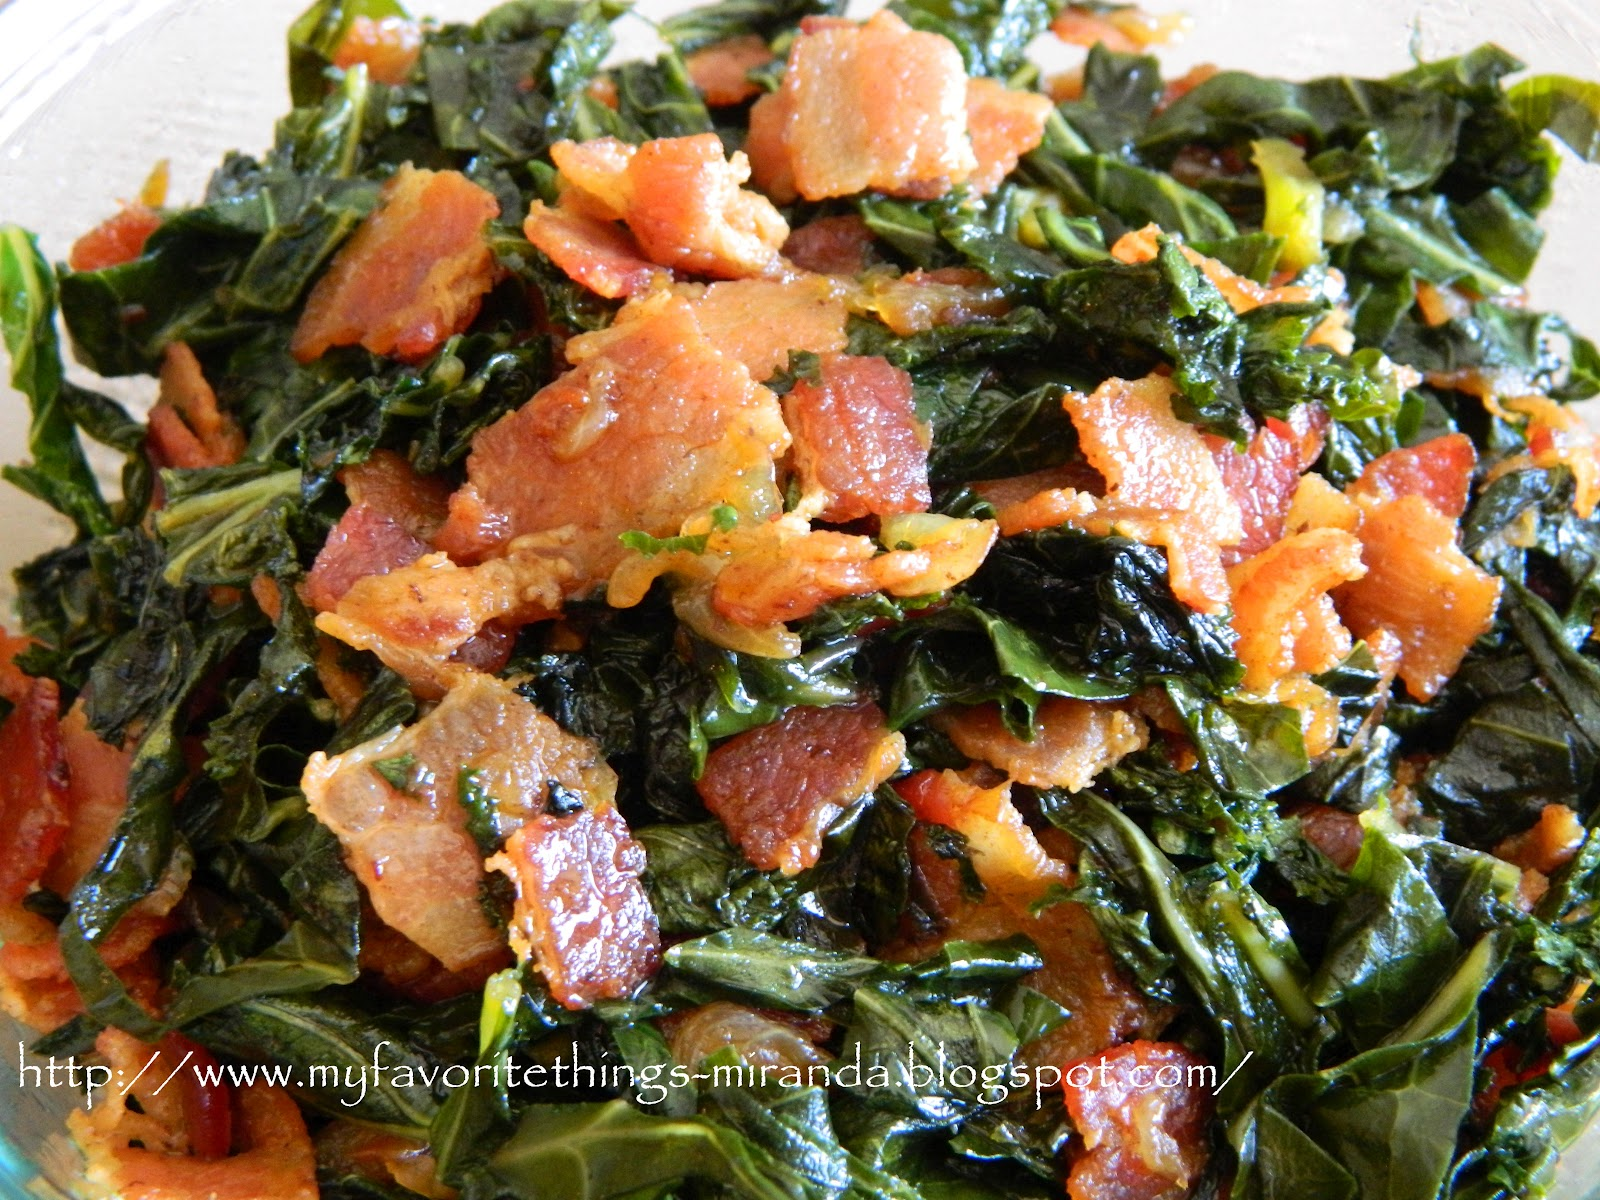 ... Favorite Things: Applewood Smoked Bacon & Maple Syrup Collard Greens